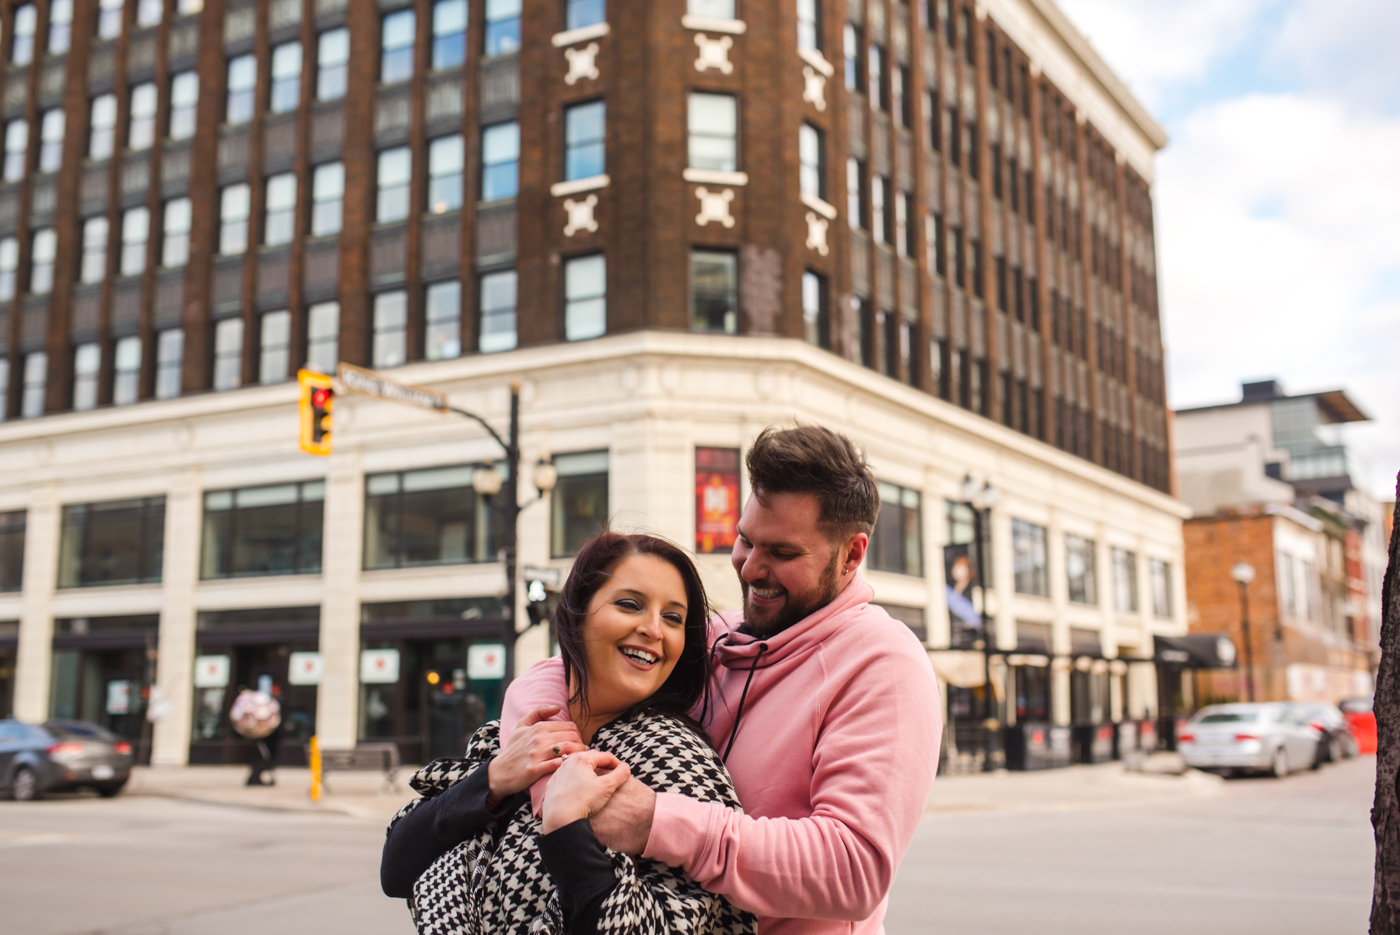 Alex & Michelle's Downtown Hamilton Gore Park James Street North King Street East Engagement Session Aidan Hennebry Urban Wedding Photographer Hush Hush Photography & Film-22.jpg